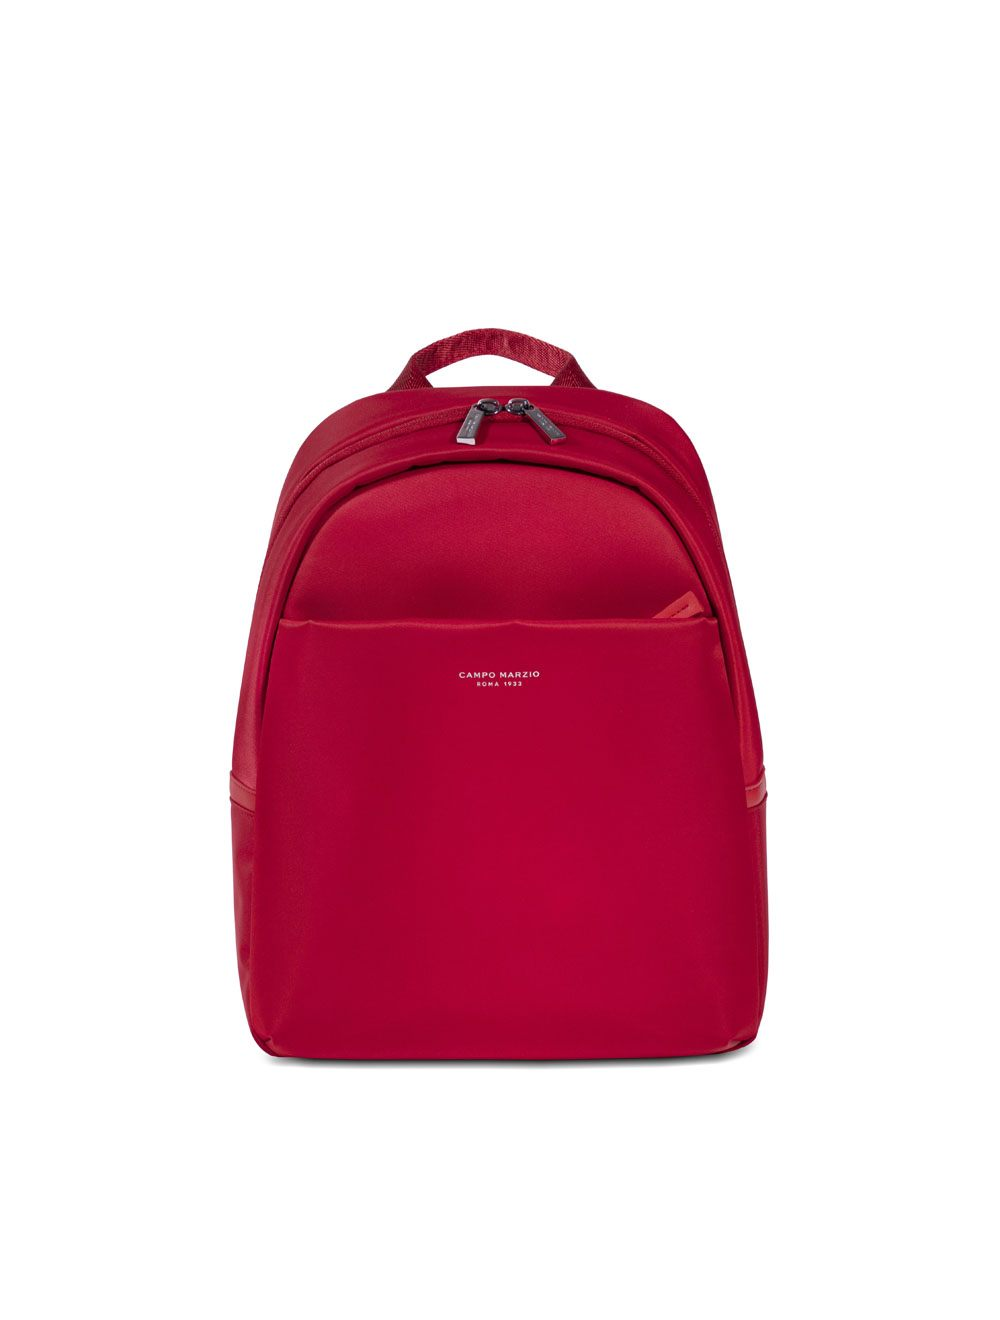 "Urban Backpack 11"" - Cherry Red"